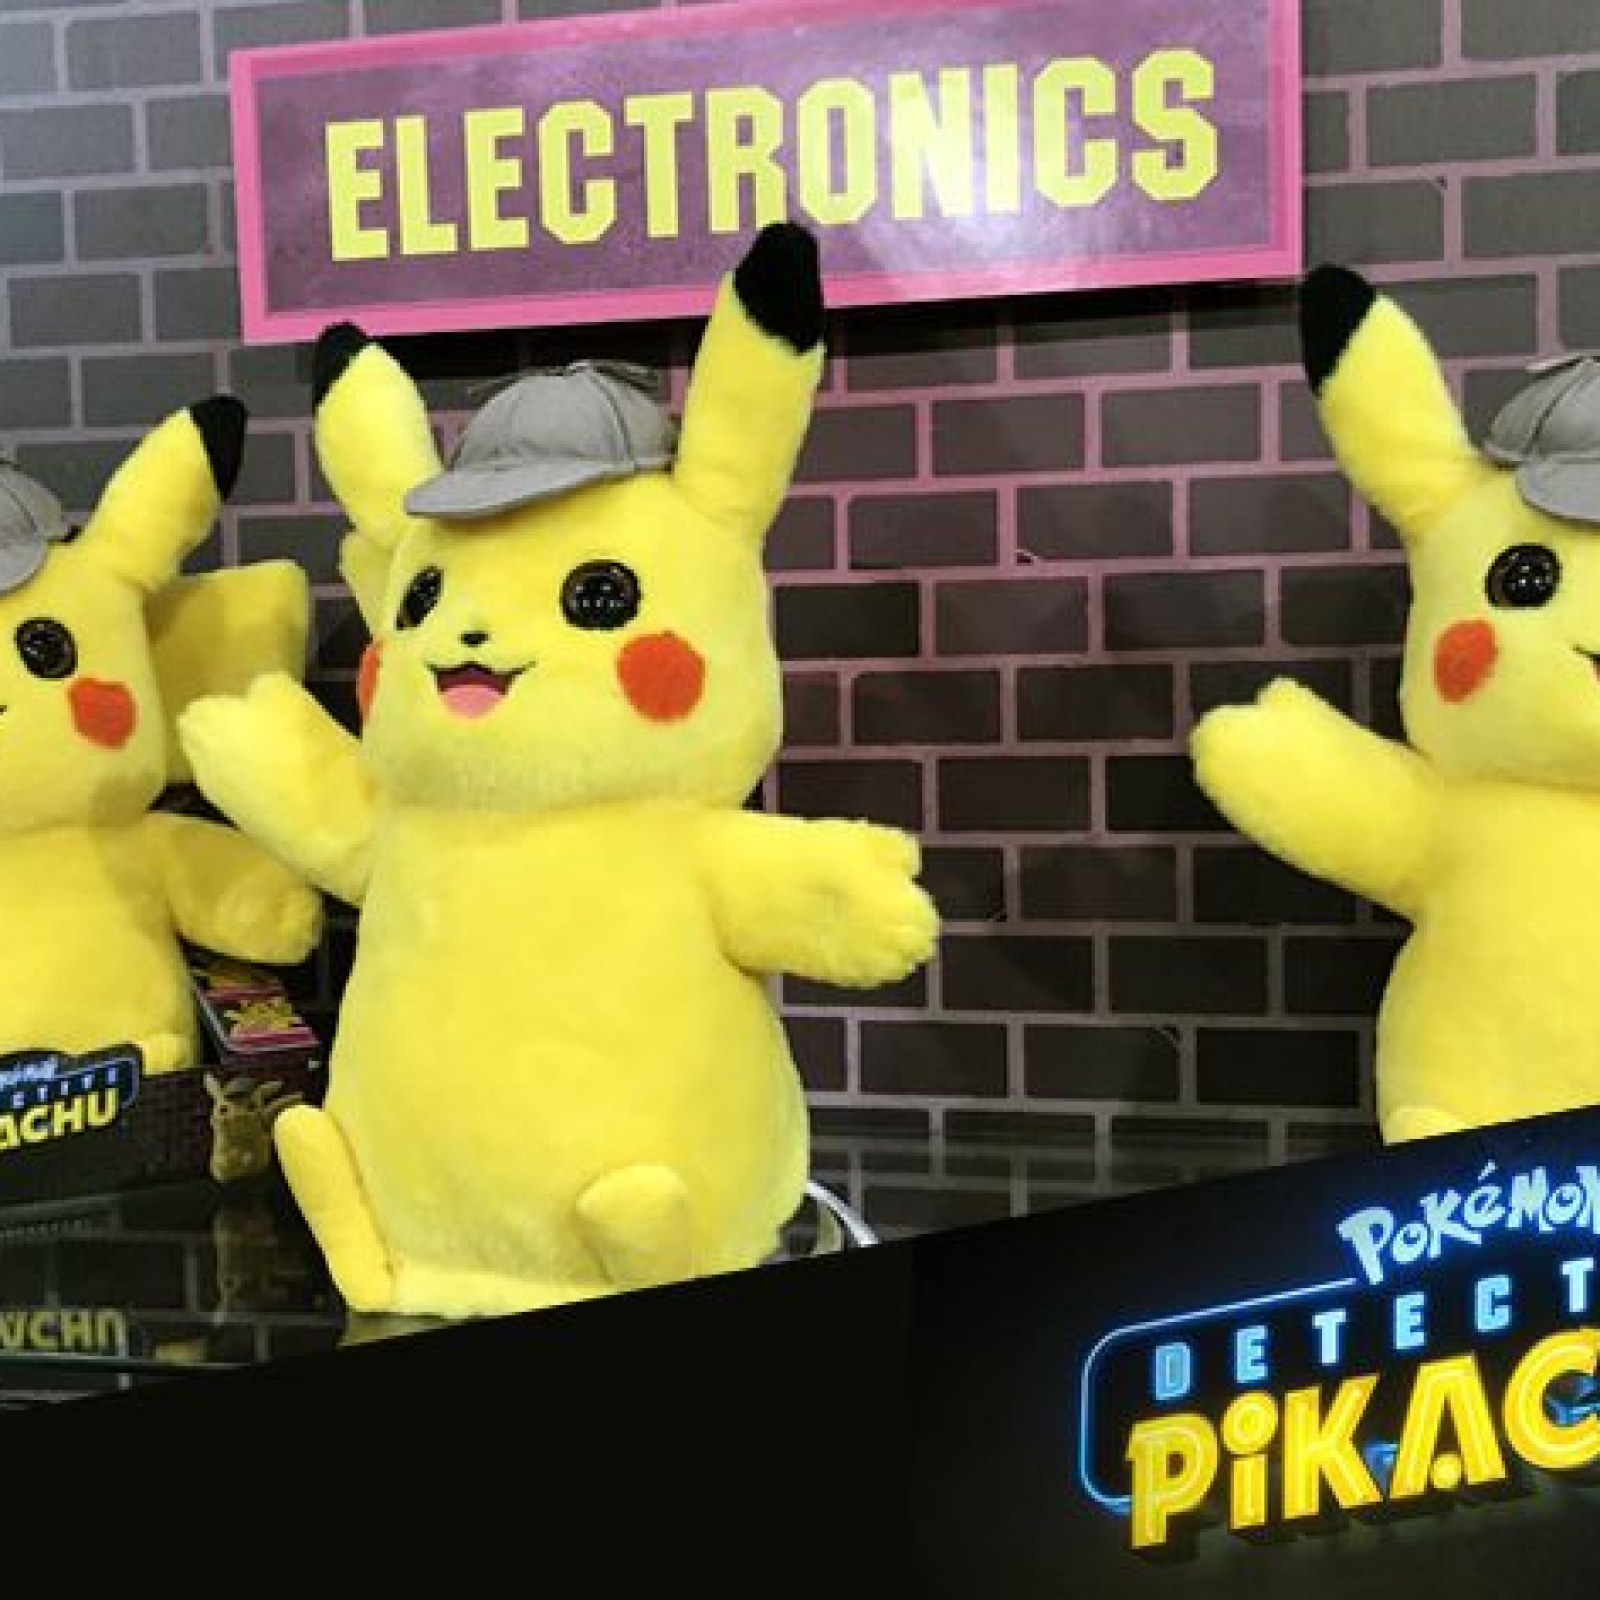 Detective Pikachu Merchandise The Highlight Of Pokemon At Toy Fair